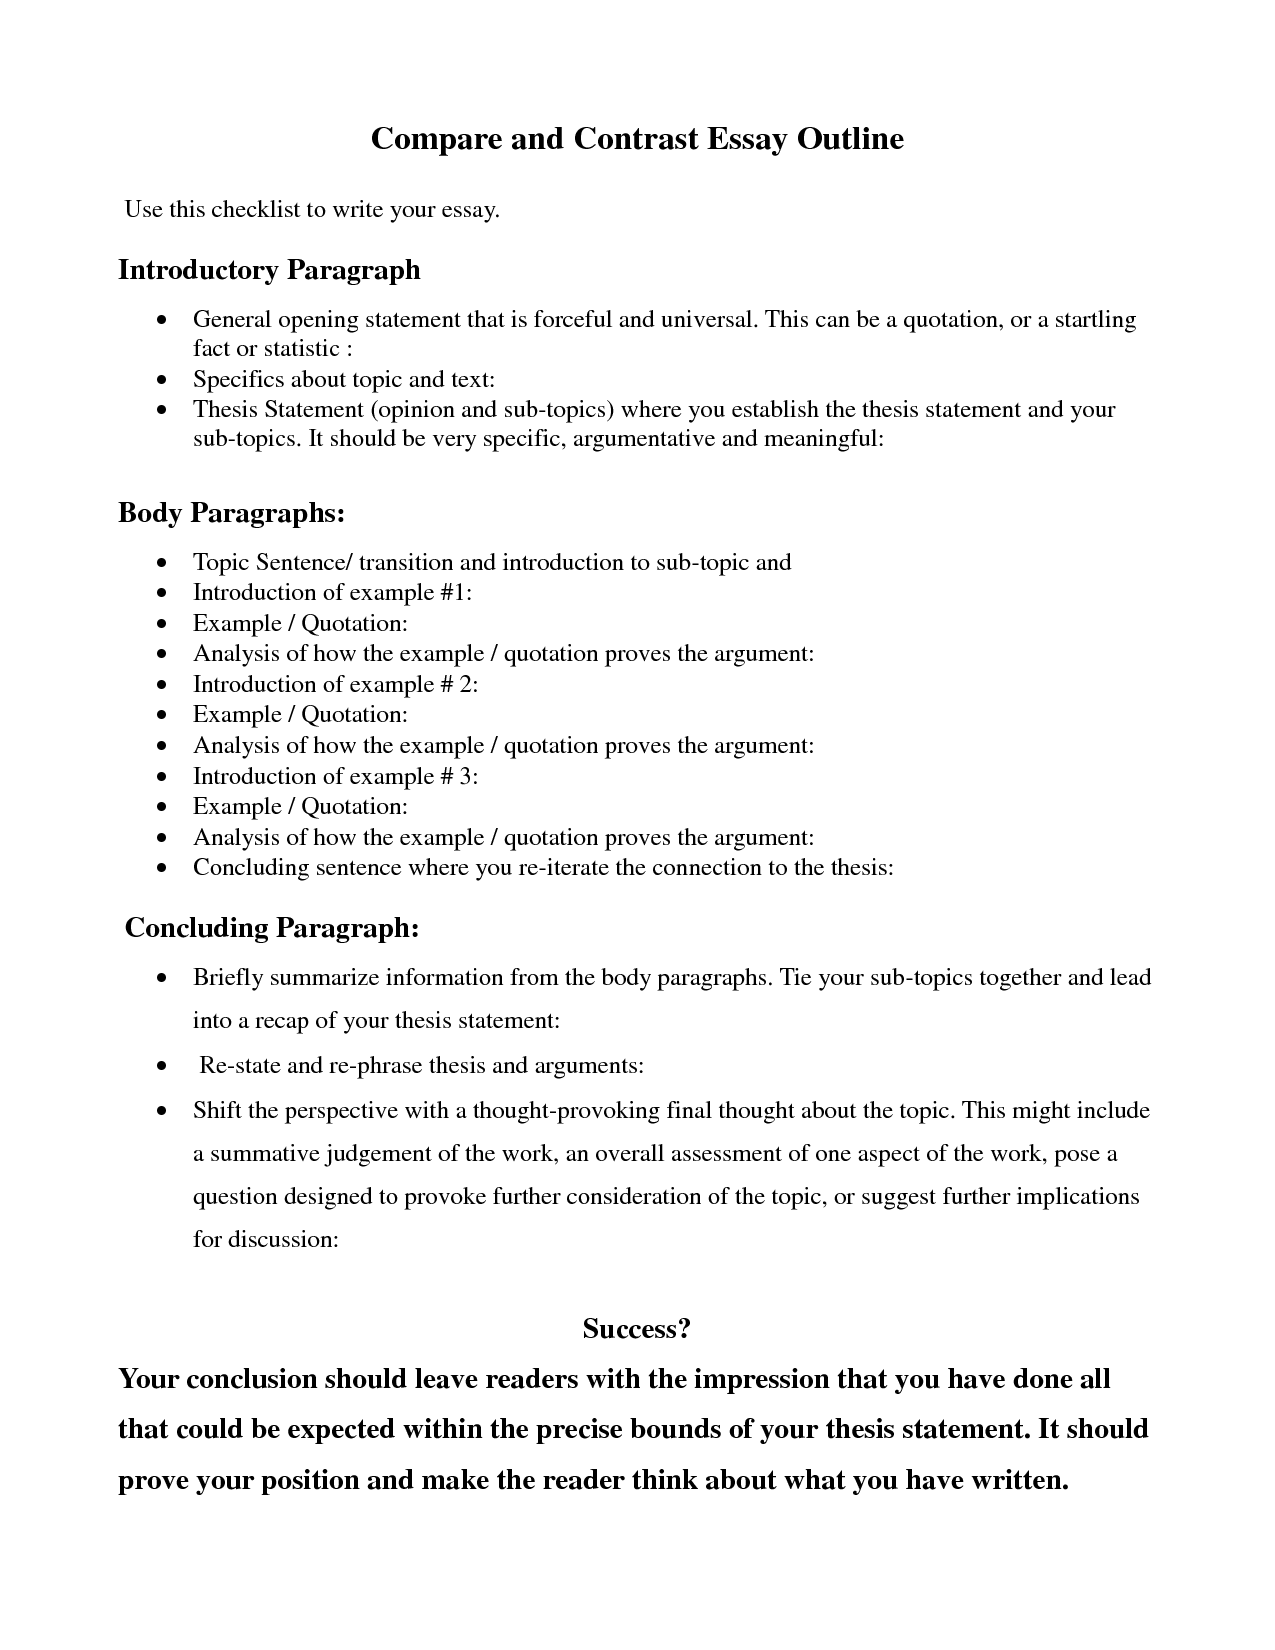 Compare contrast essay outline google search education thesis